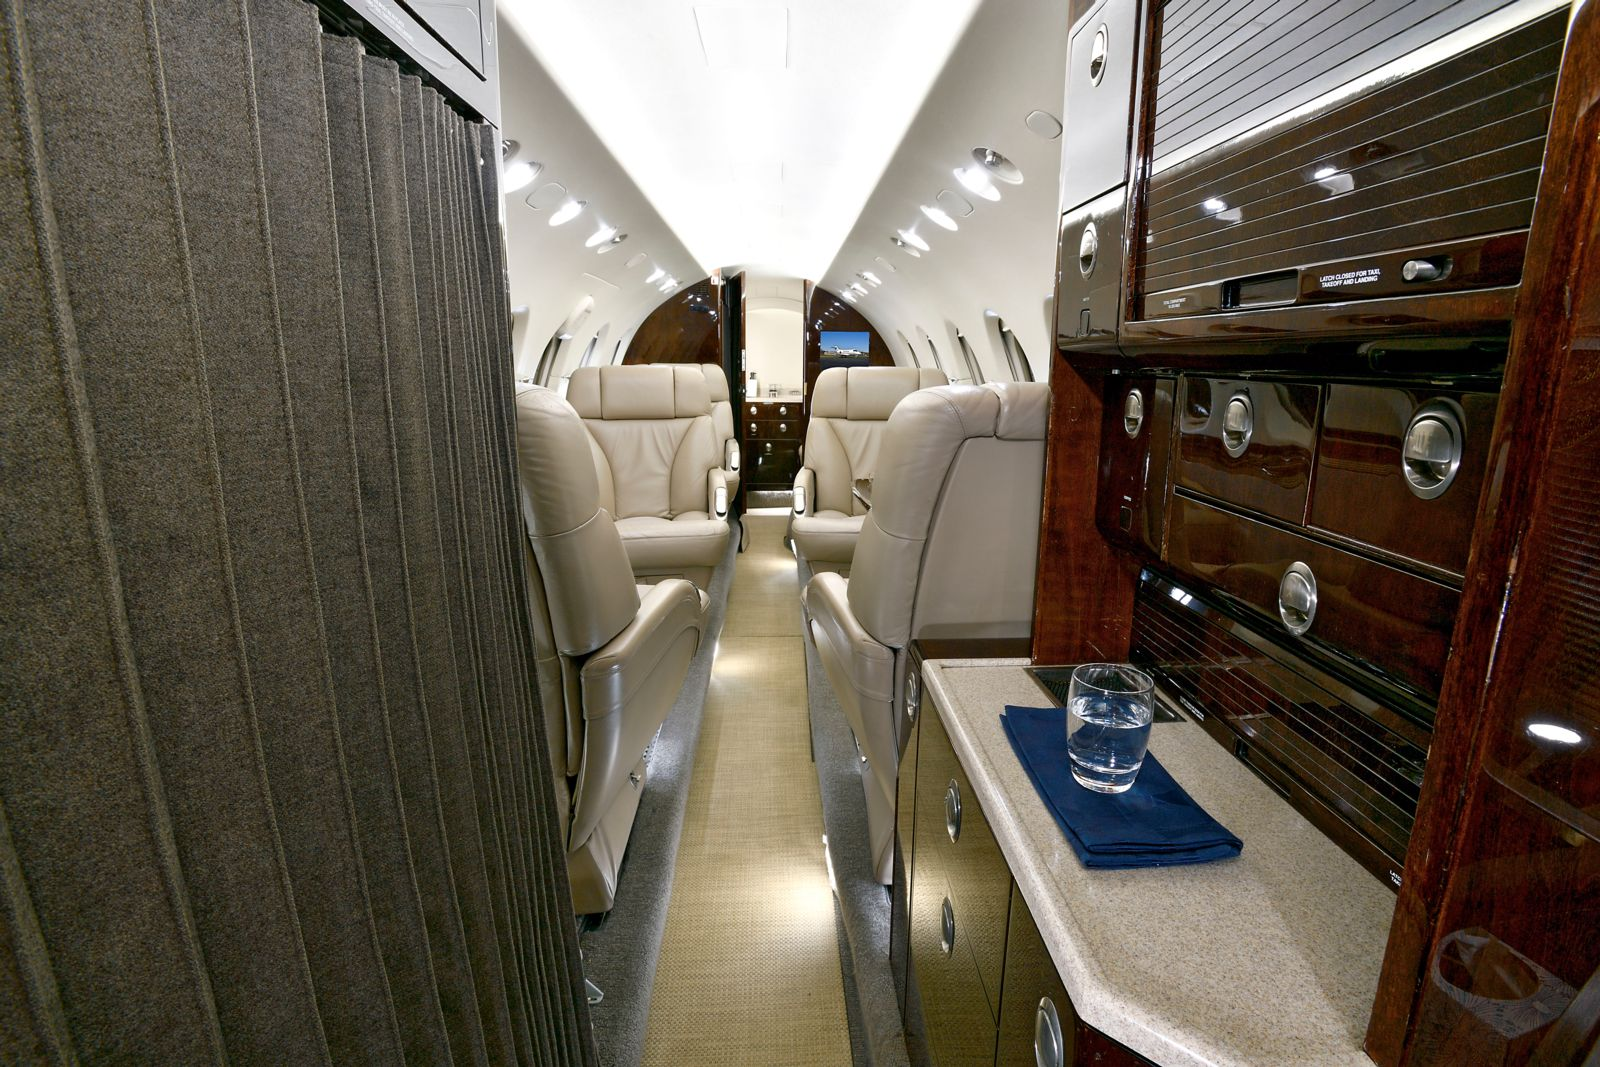 Hawker/Textron 900XP  S/N HA-0019 for sale | gallery image: /userfiles/images/H900XP_sn_19/galley%20aft.jpg